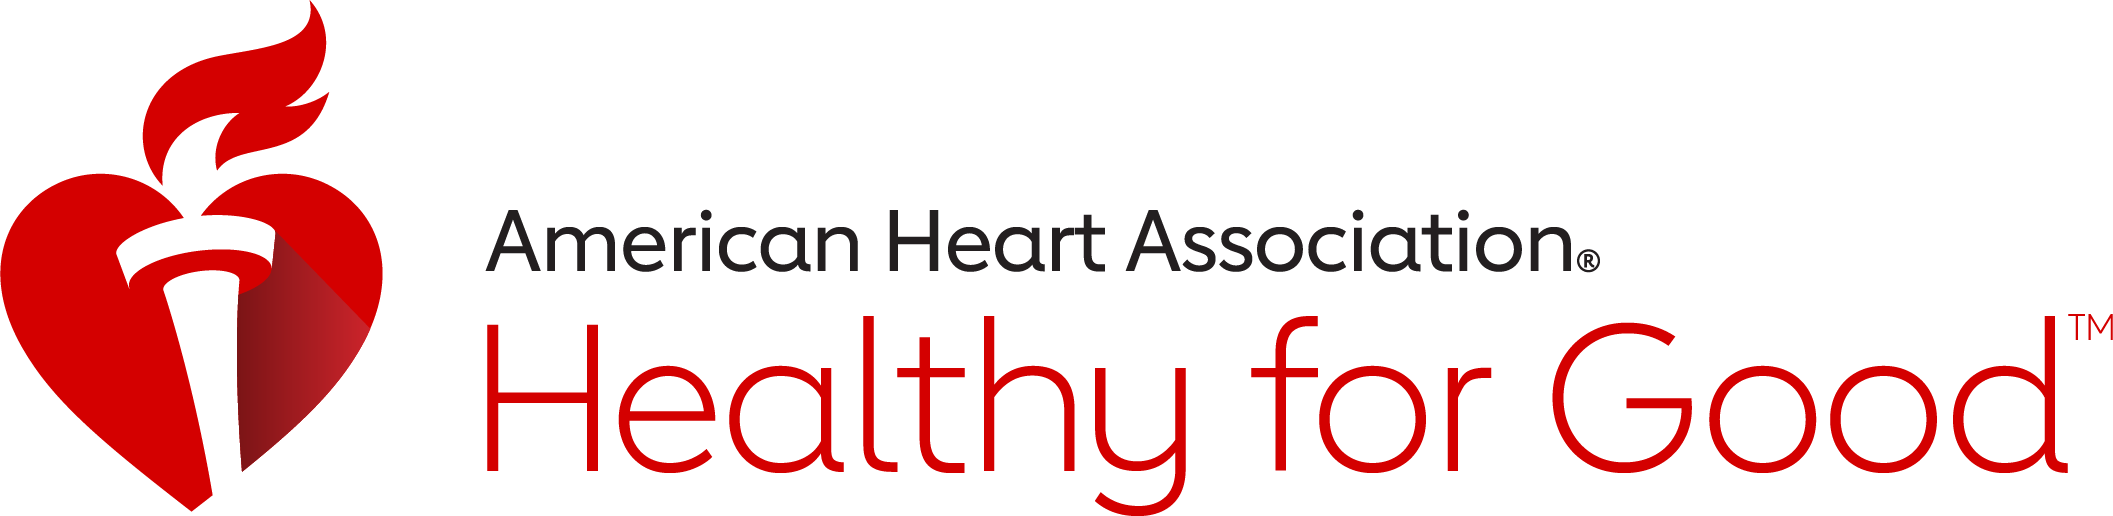 "American Heart Association logo badge for digital content, which reads ""American Heart Association"" and ""Healthy for Good."""